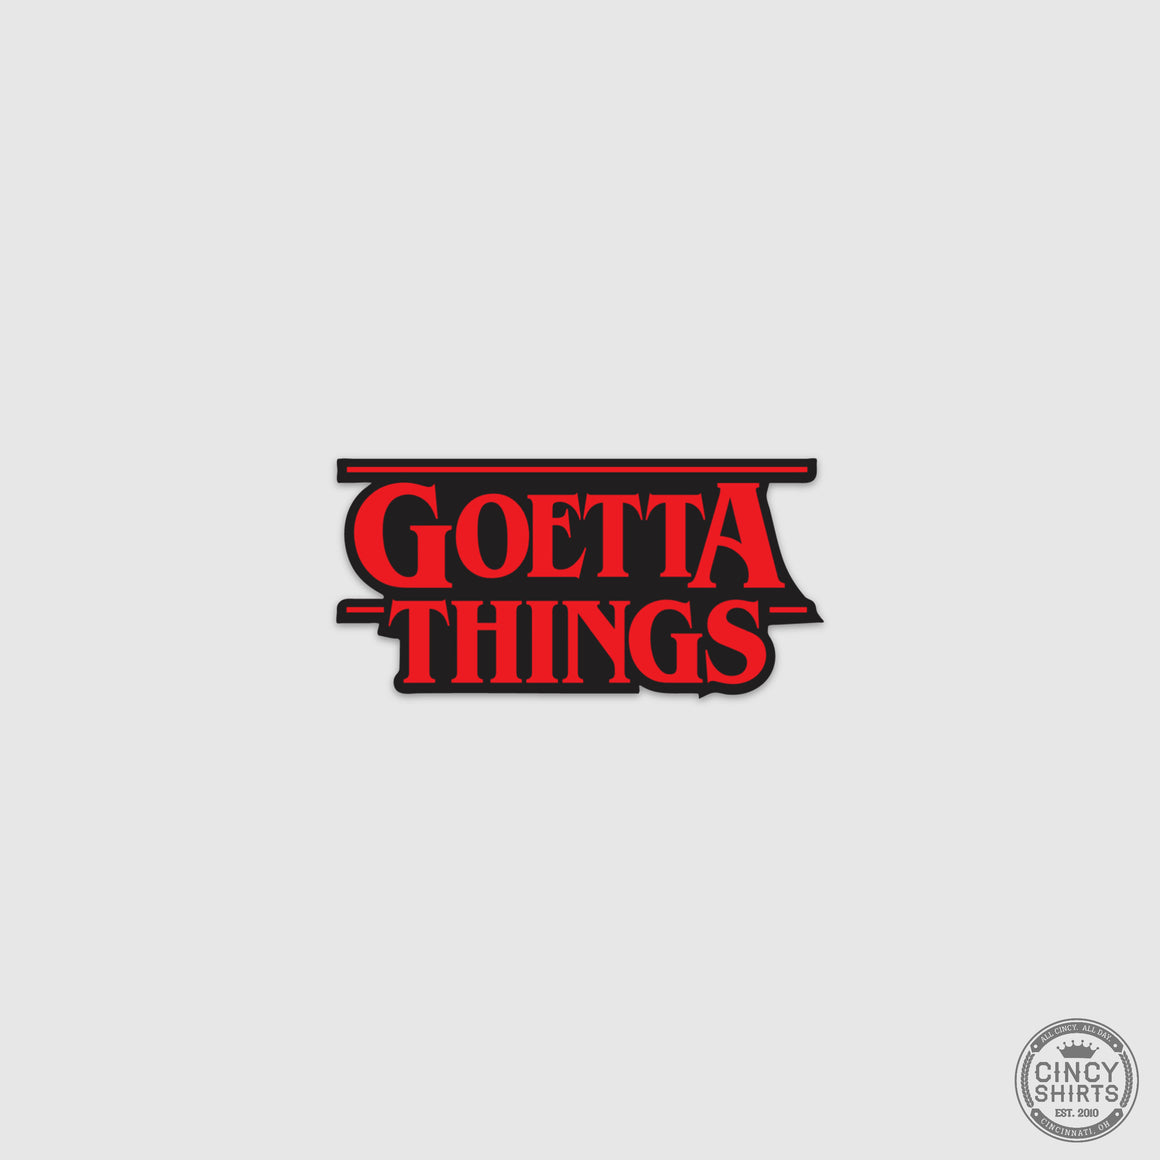 Goetta Things Sticker - Cincy Shirts